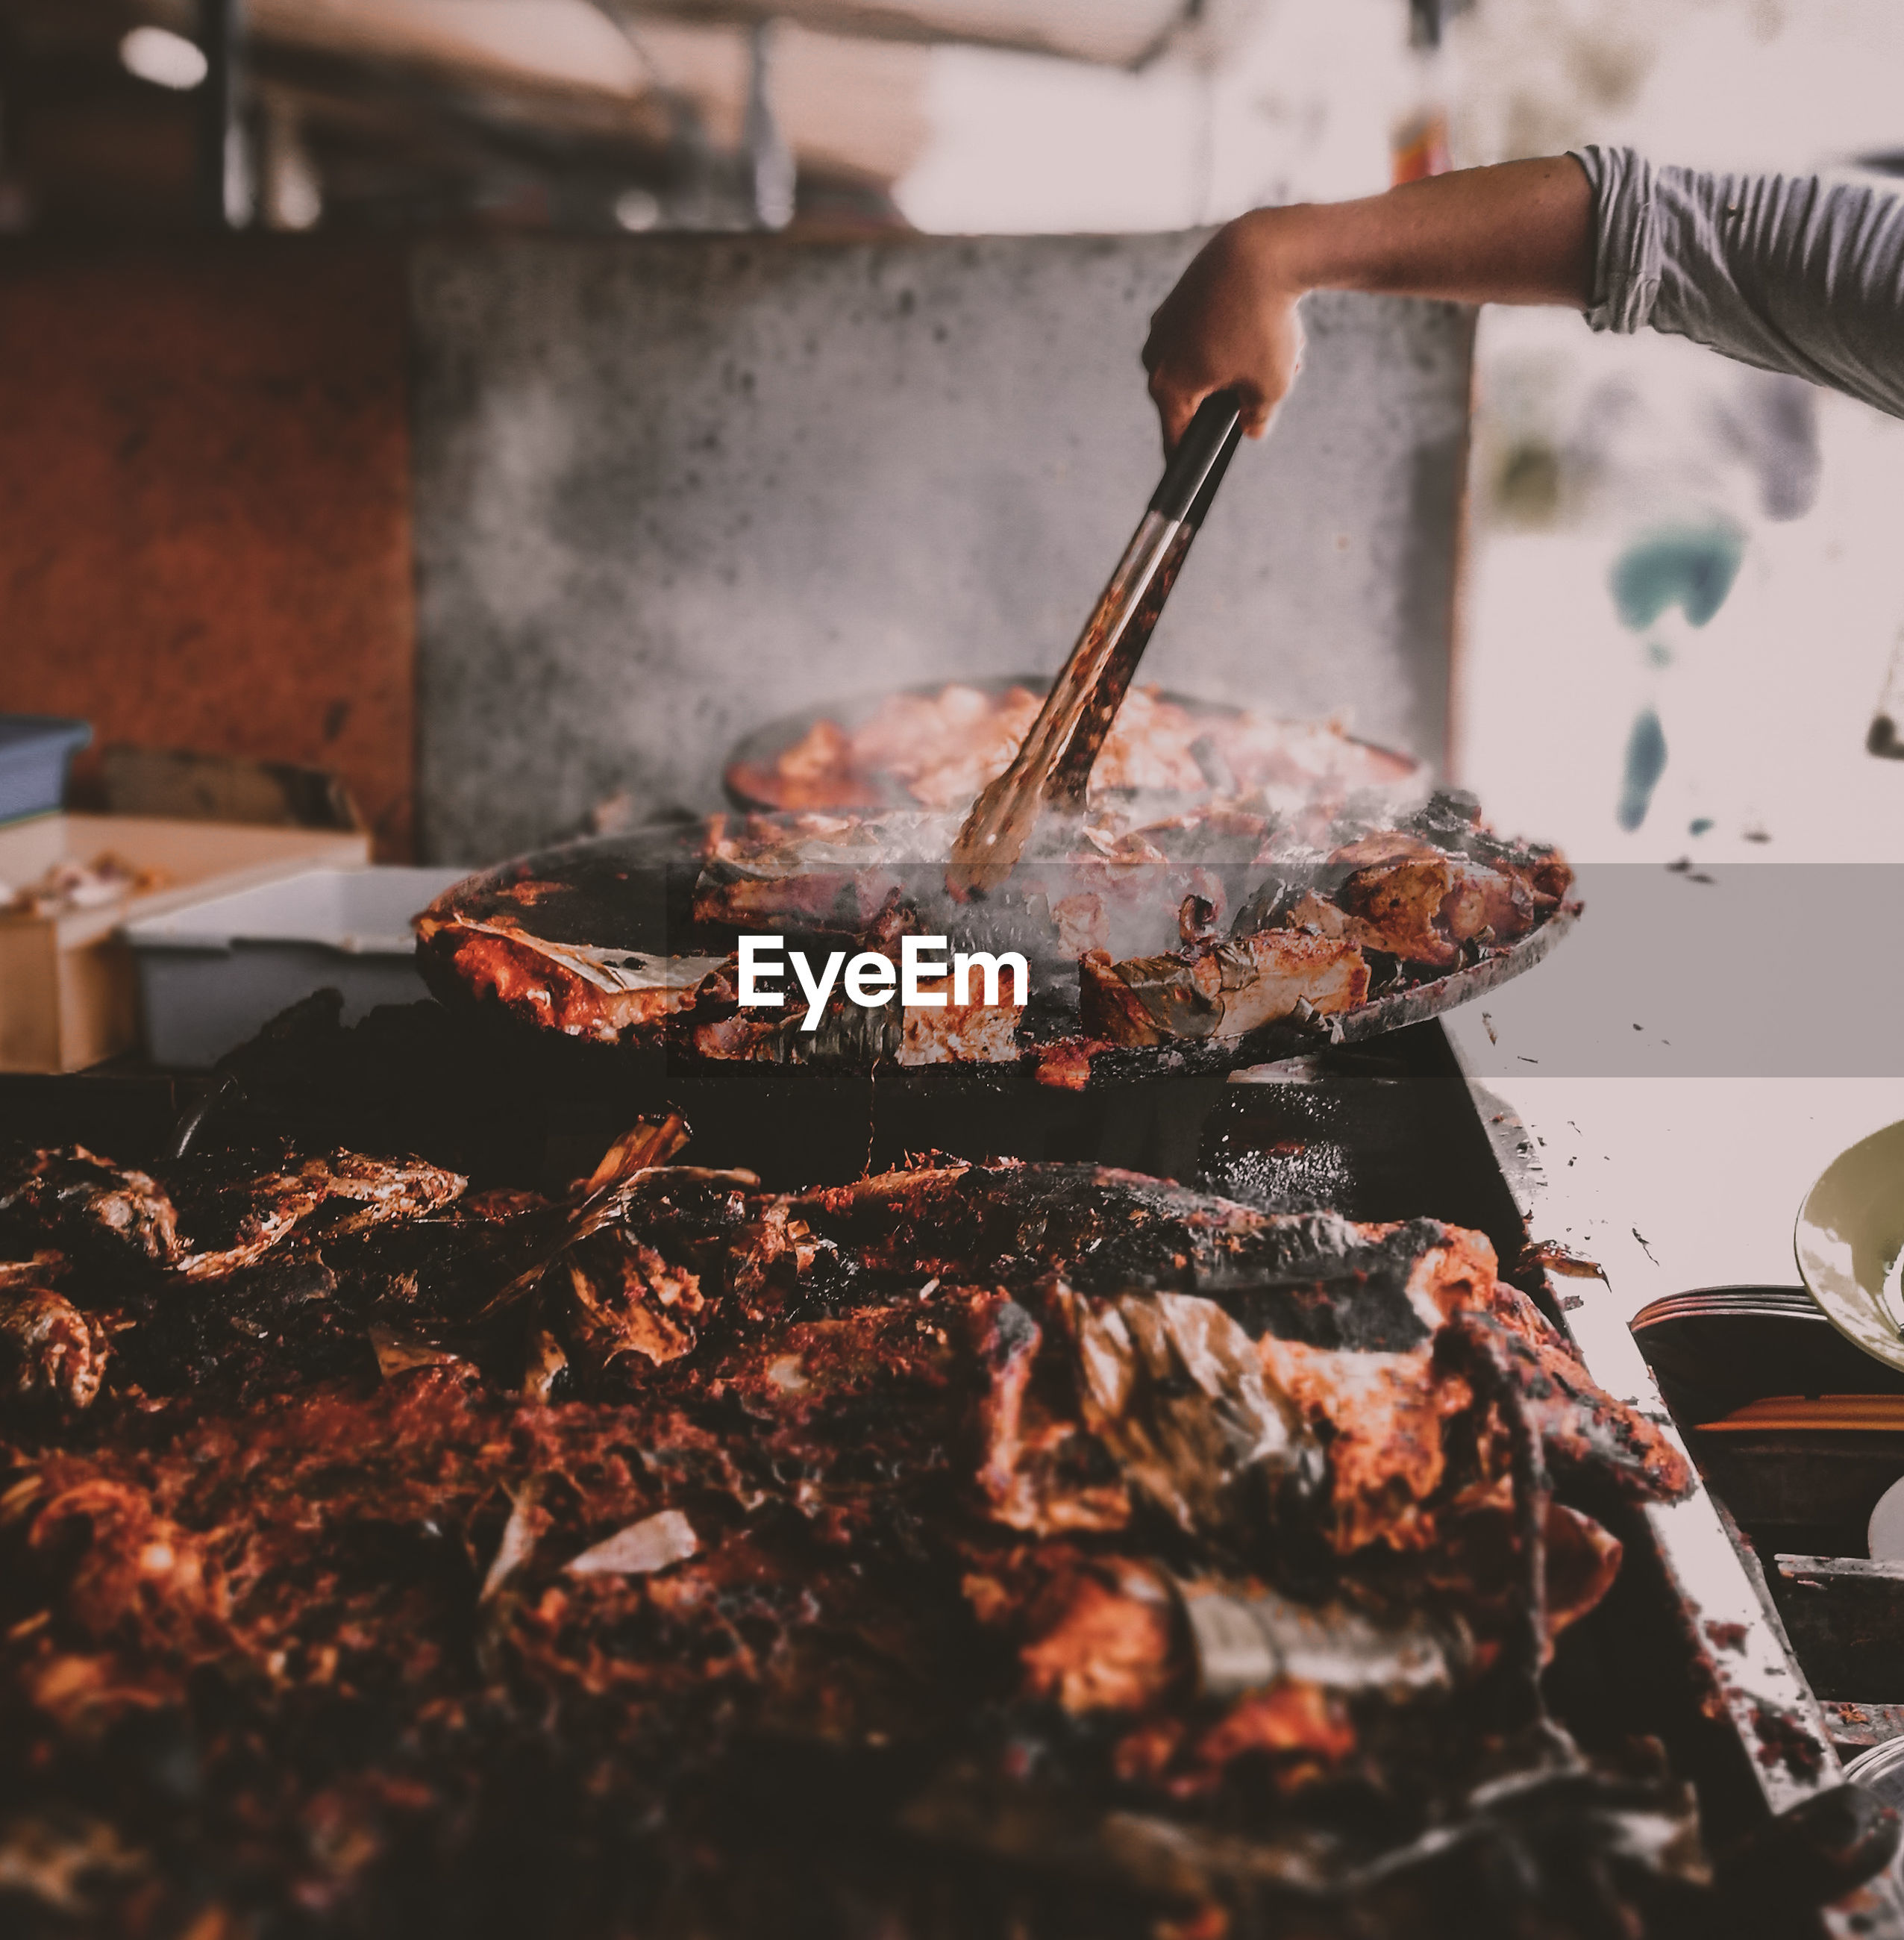 Cropped image of person roasting meat at market stall